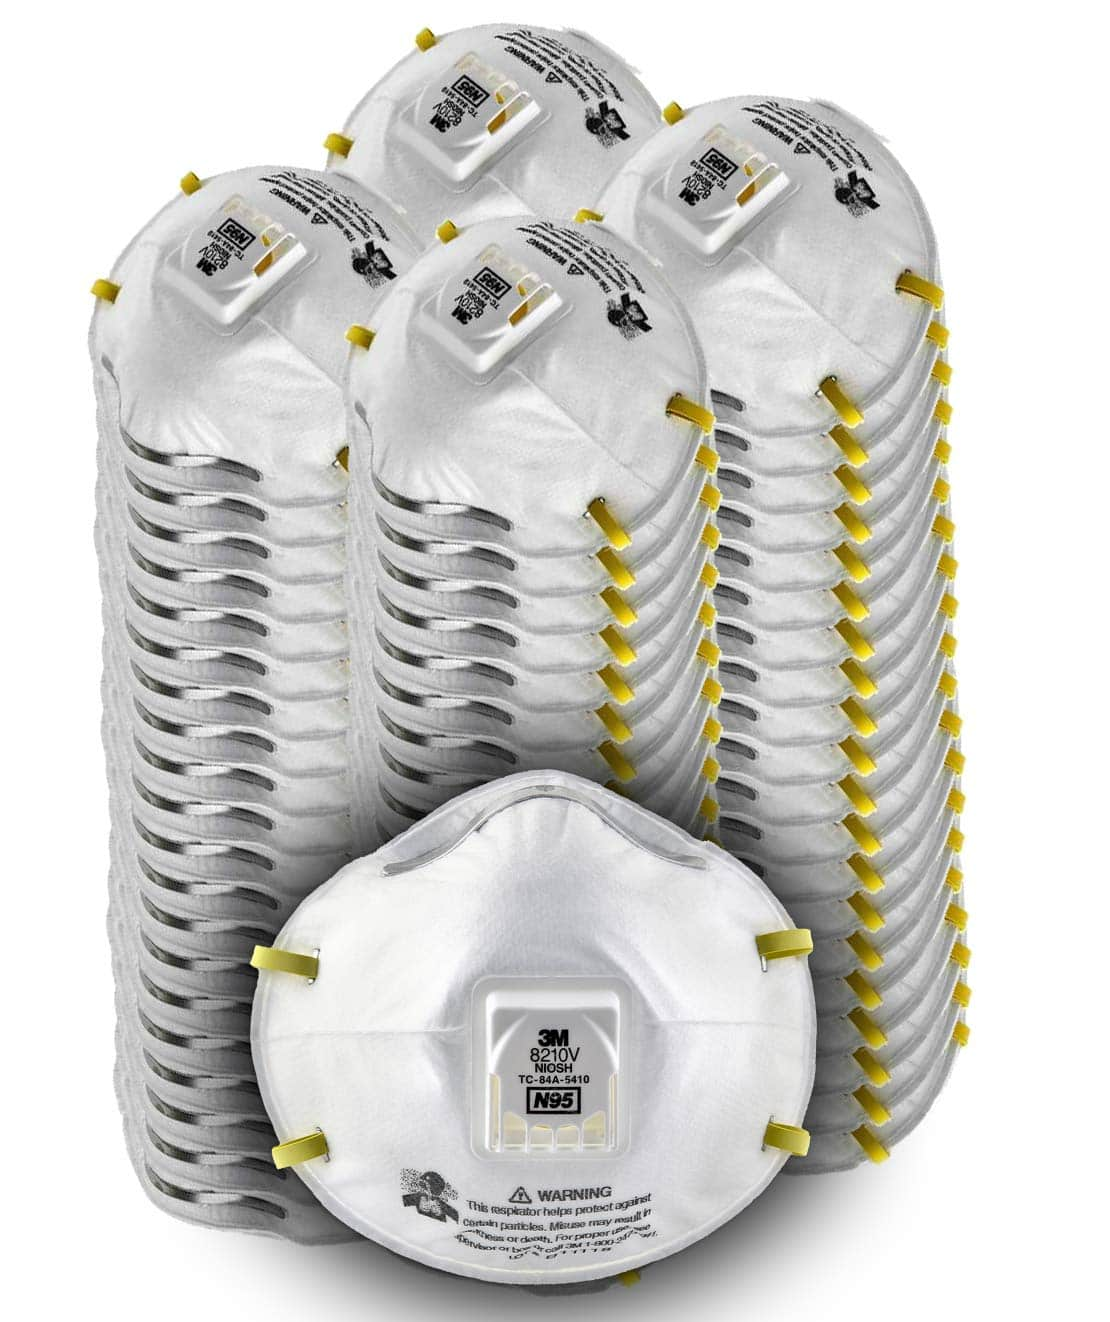 3M Particulate N95 Respirator 8210V with Cool Flow Valve, 80/Pack $95.55